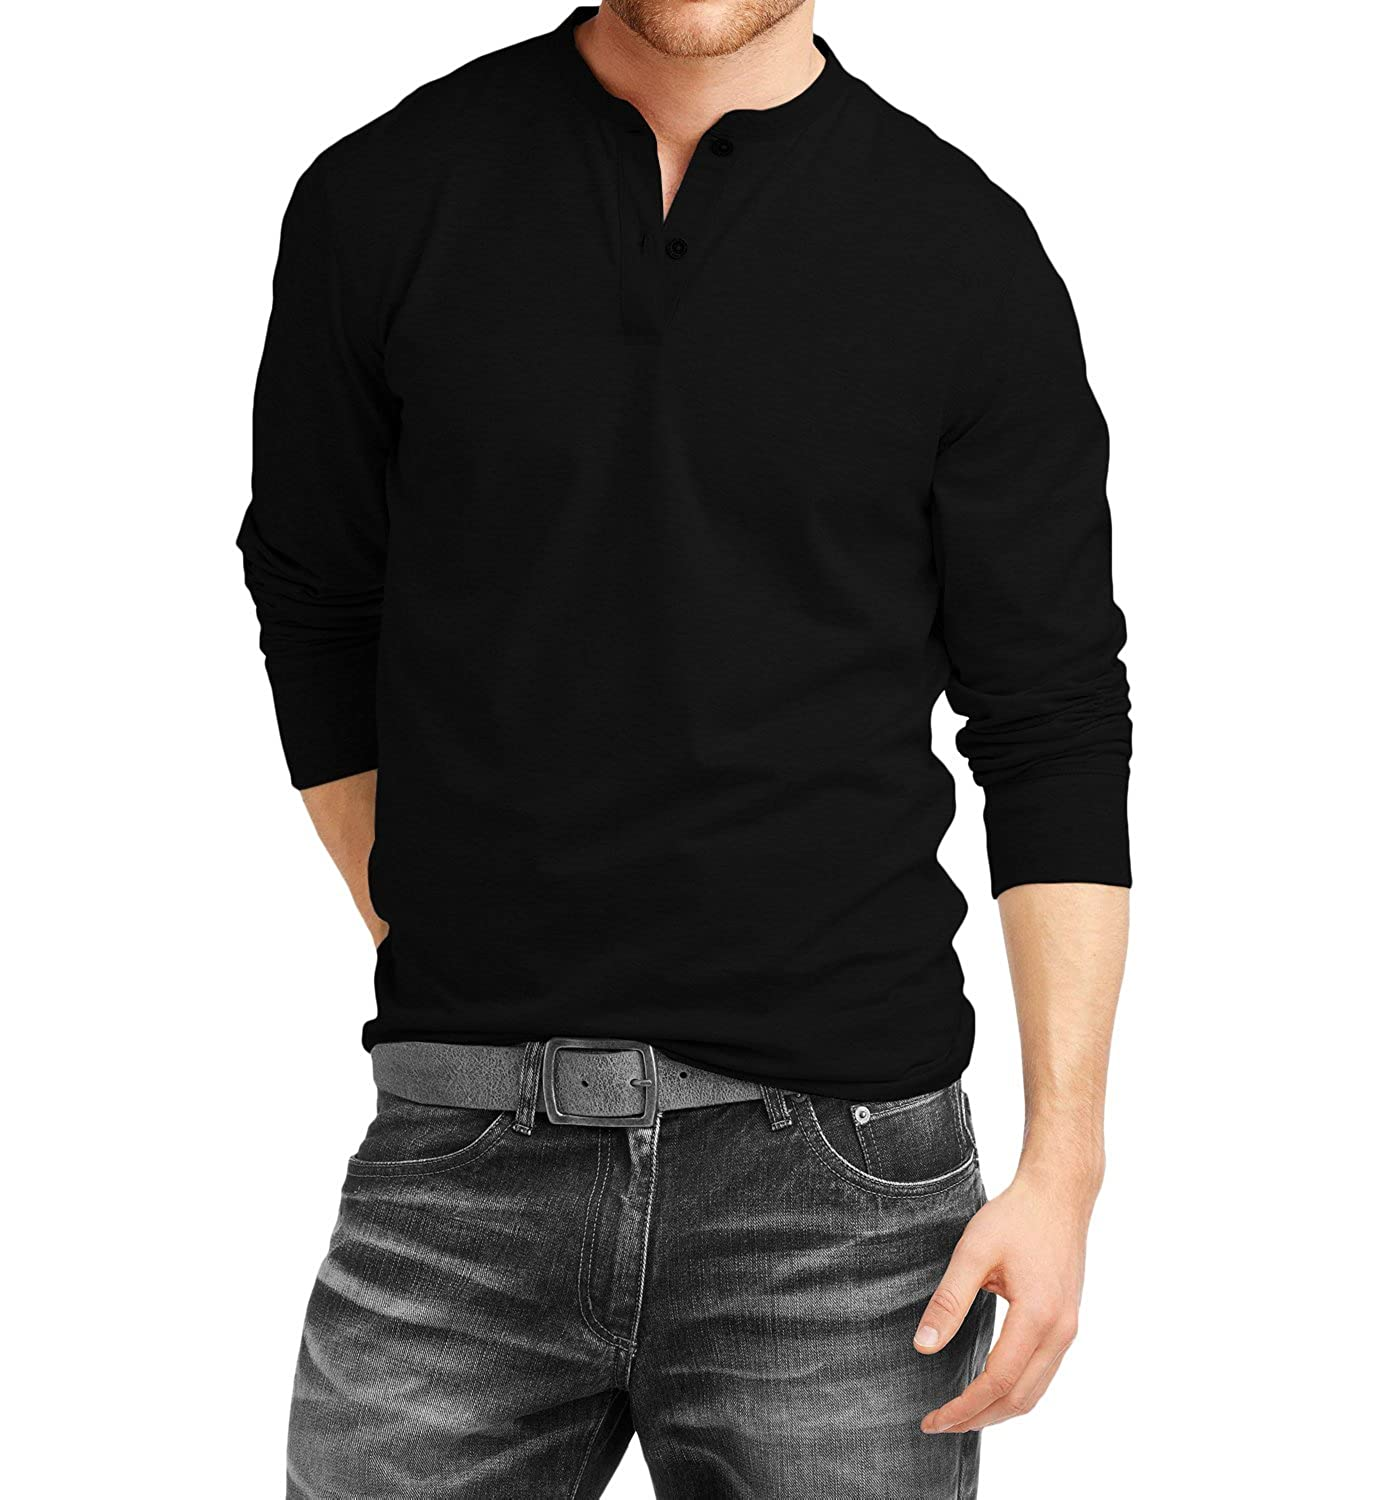 Black t shirt collar - Fanideaz Men S Cotton Henley Full Sleeve T Shirts For Men Premium Black Henley T Shirt Amazon In Clothing Accessories